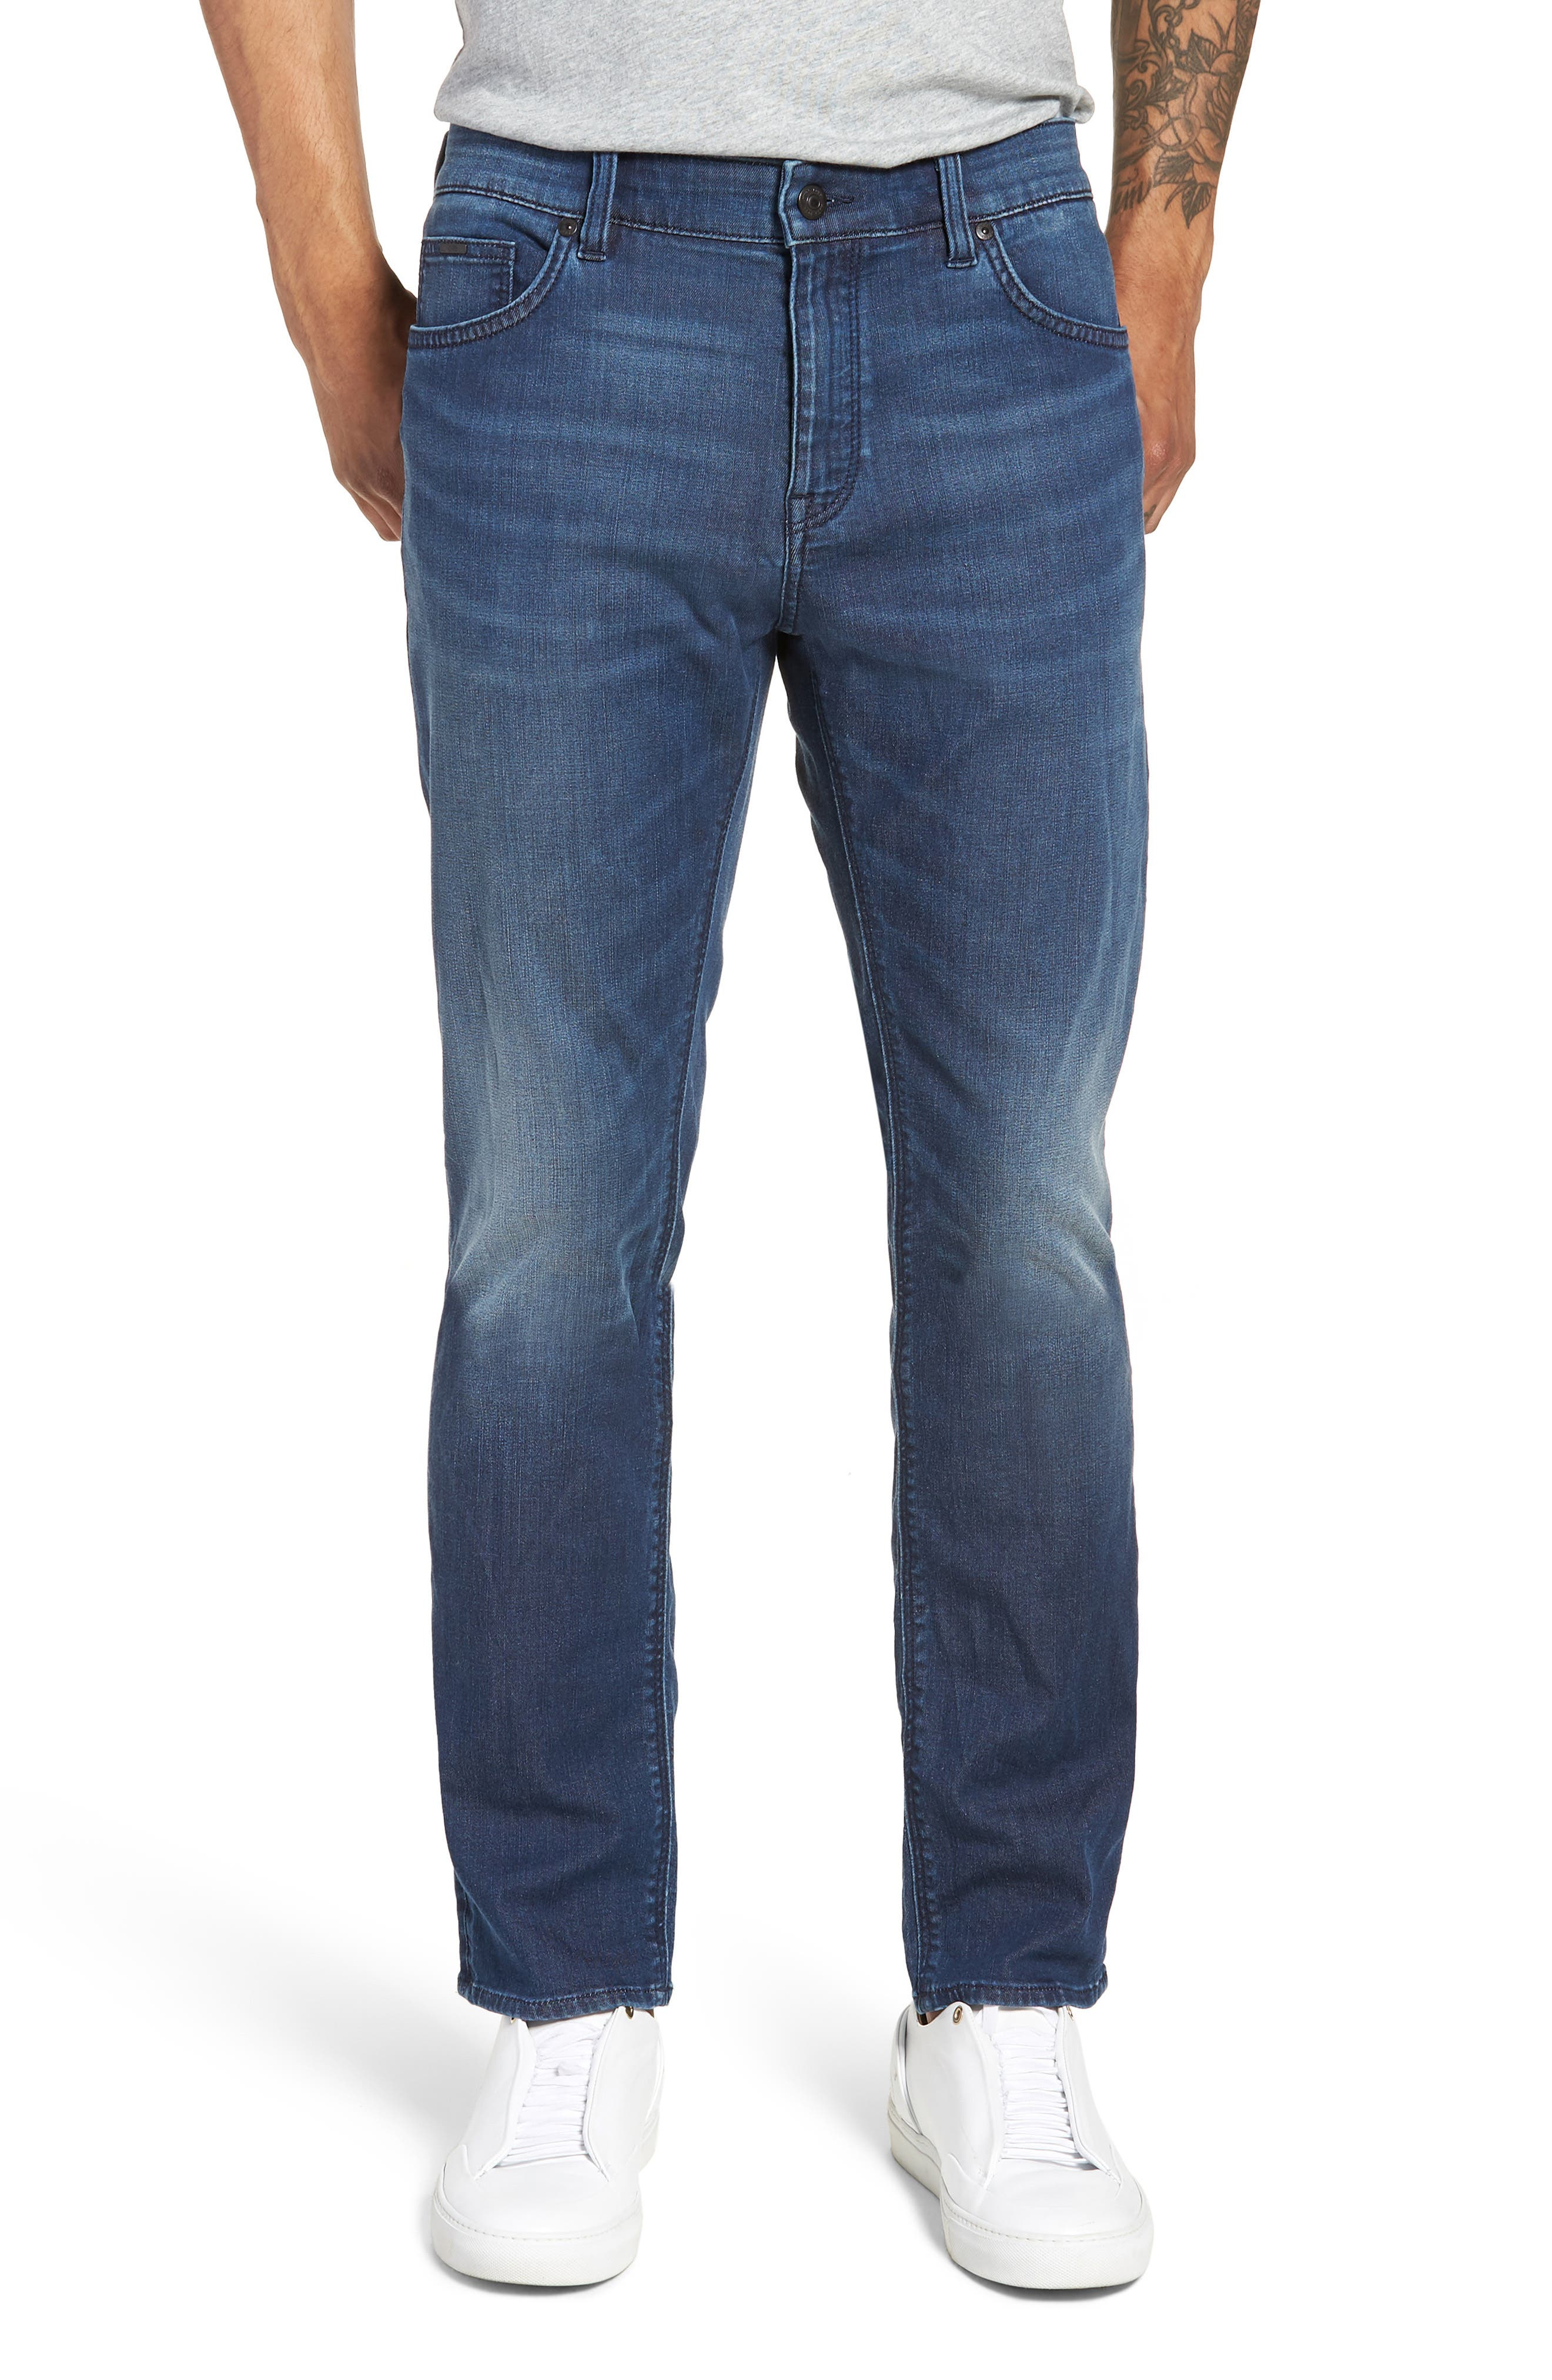 Maine Straight Leg Jeans,                         Main,                         color,